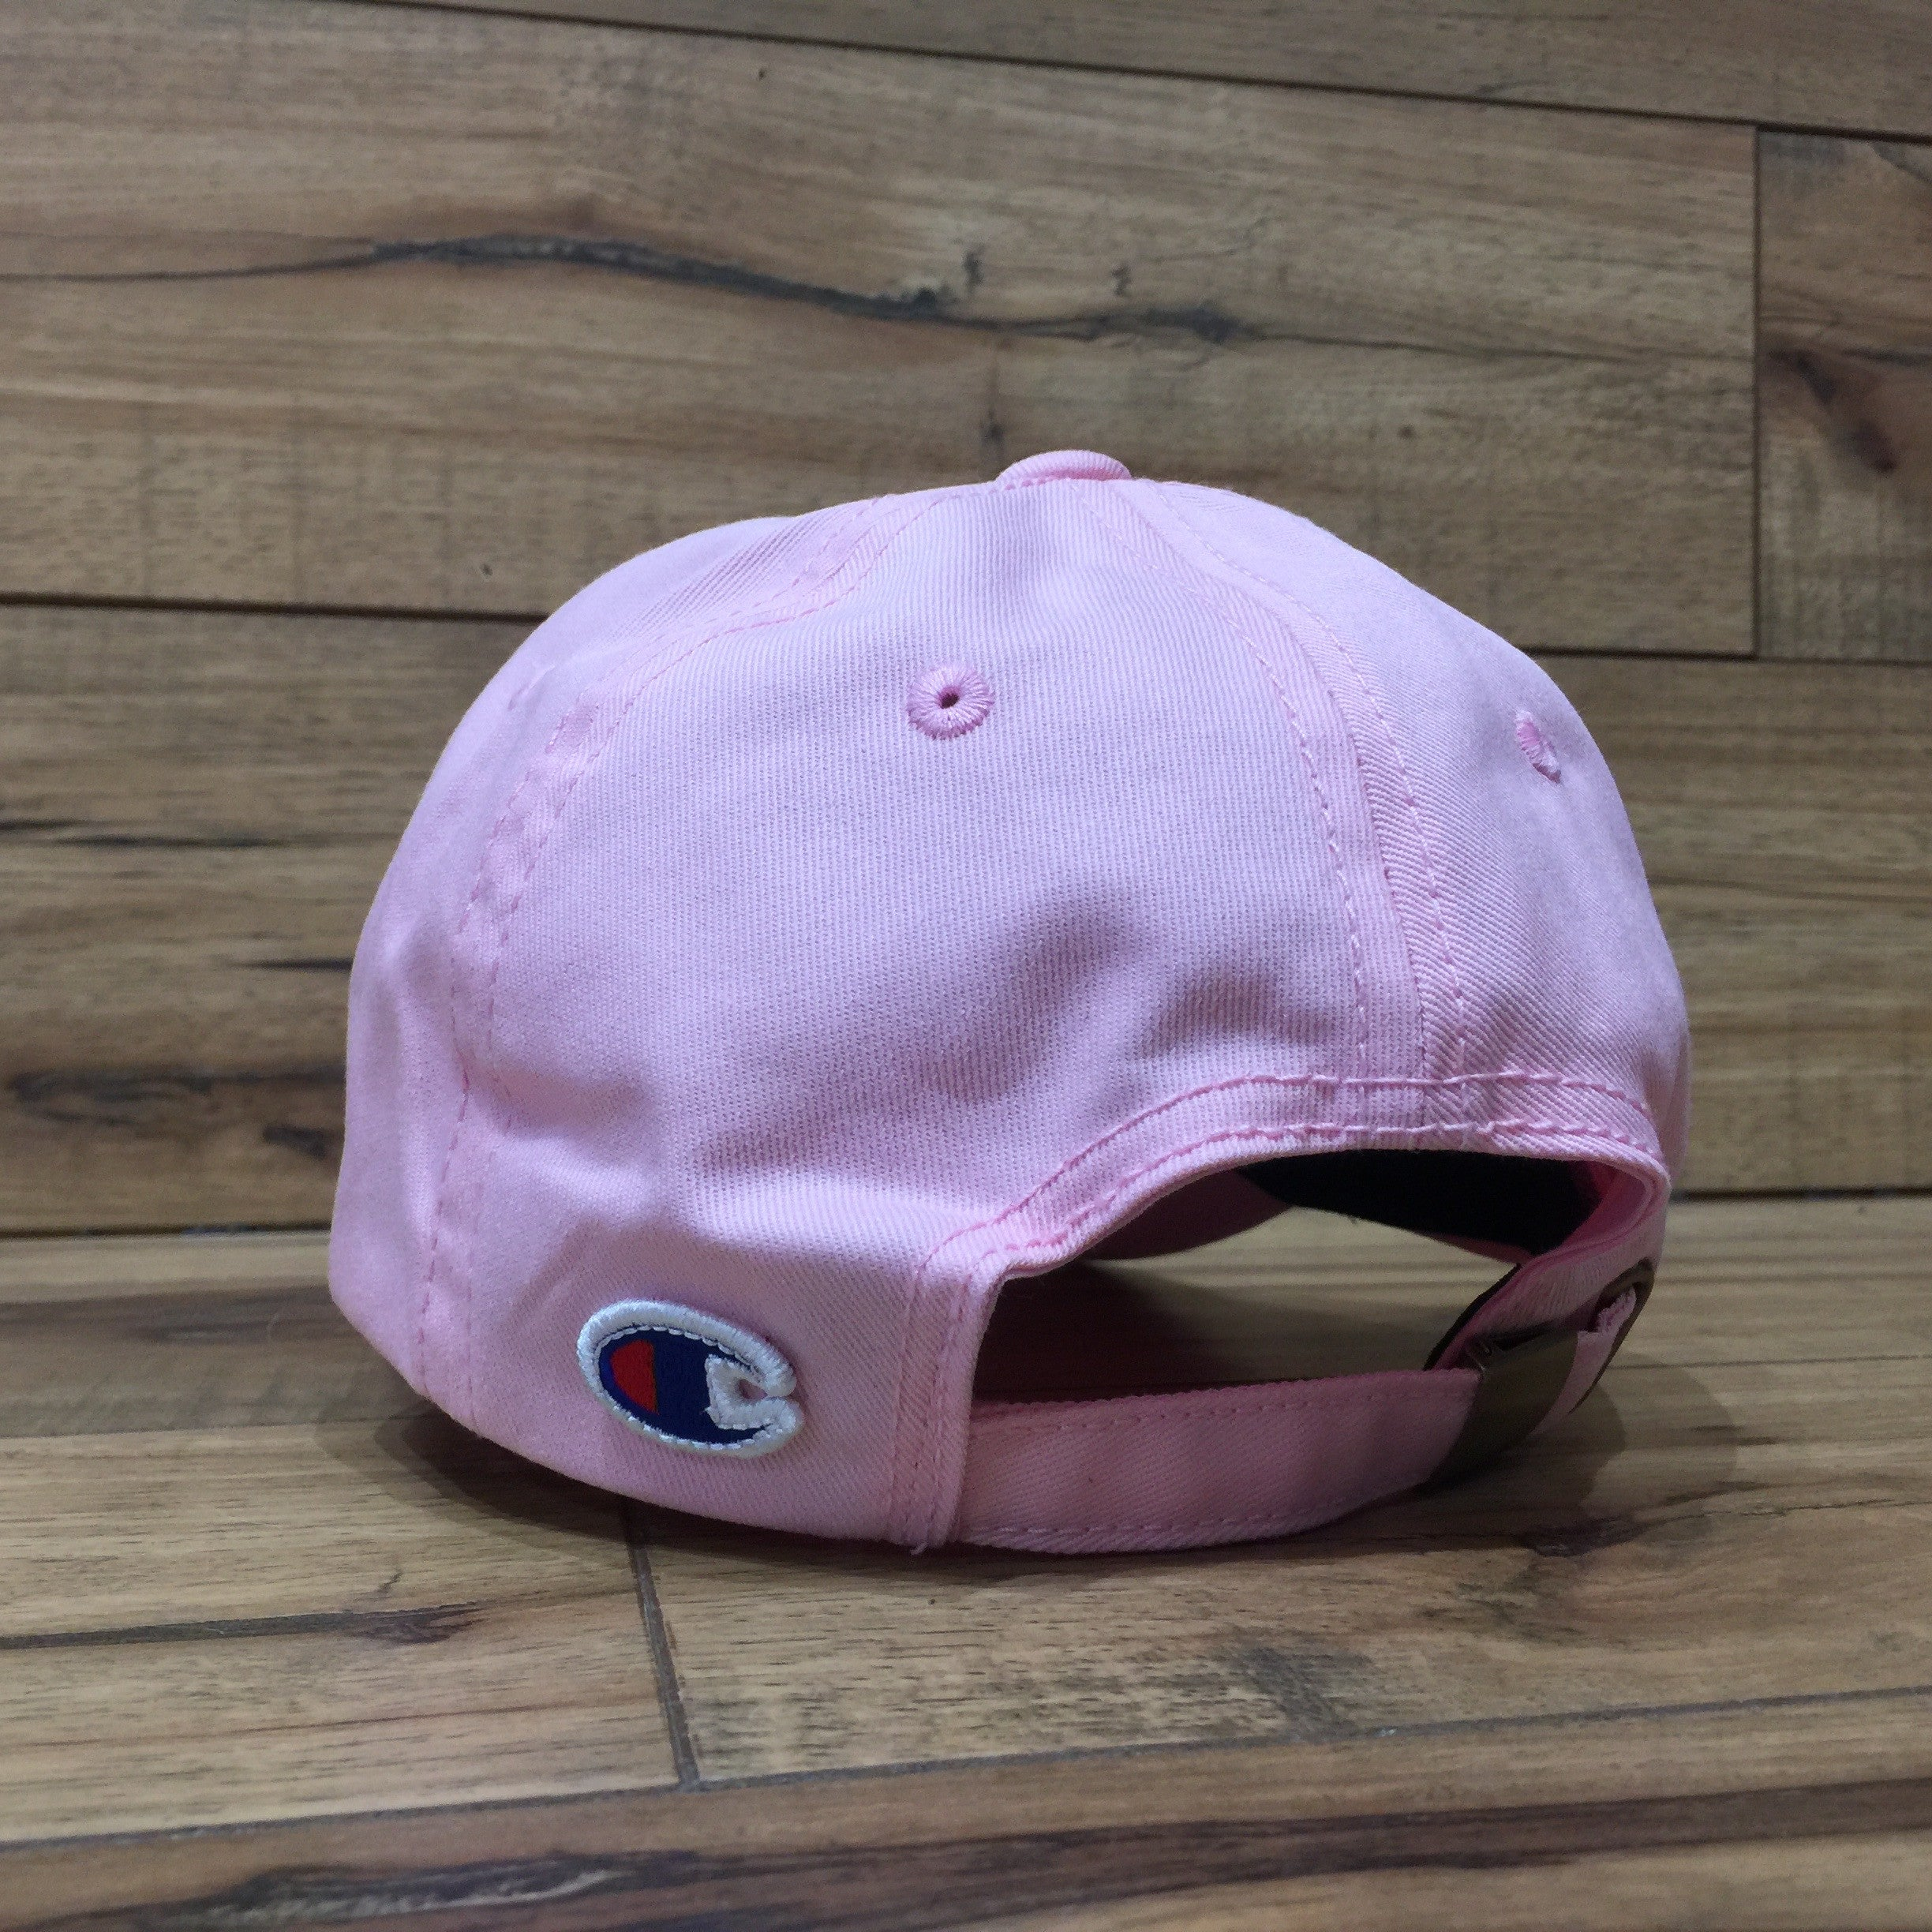 6a4f961178b1 Champion JP Hat (Pink) – Superbored Clothing Ltd.